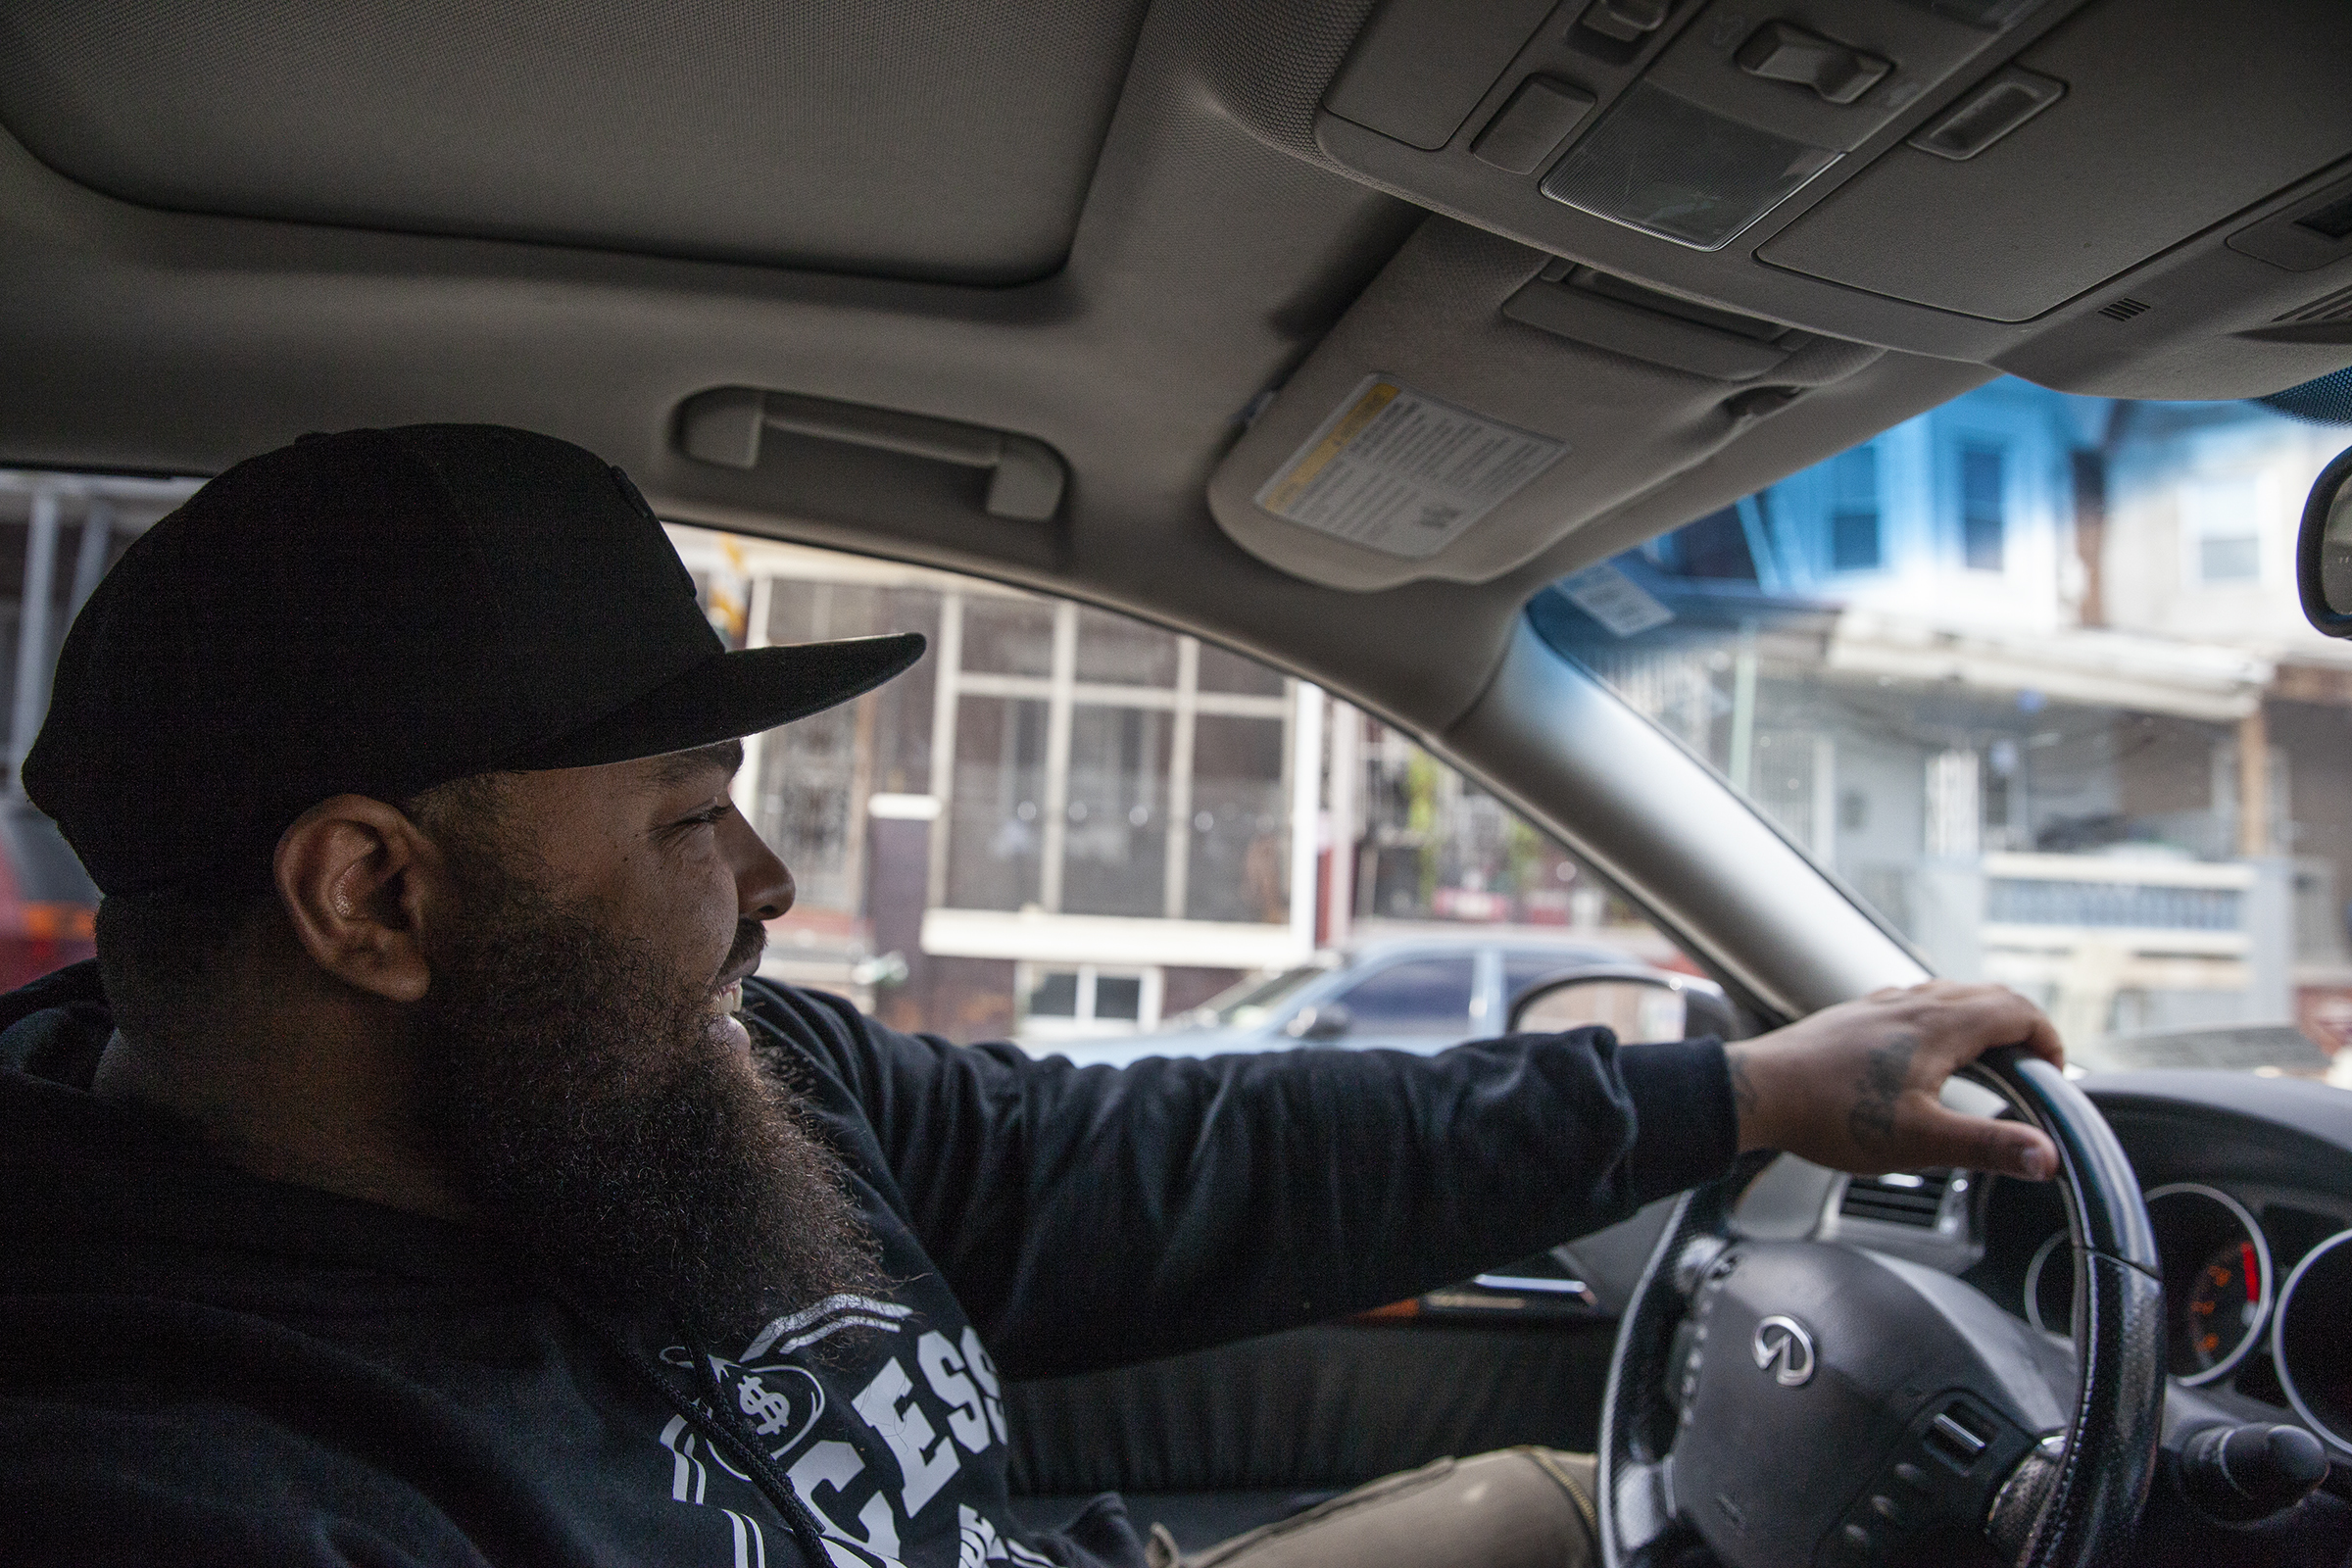 Julian Williams, known by his rap name Gunjin, drives to Hunting Park in North Philadelphia to film his next Instagram rap video, called Blackklansmen, on Tuesday, Oct. 09, 2018. Williams said the video was inspired by the story of Nat Turner.